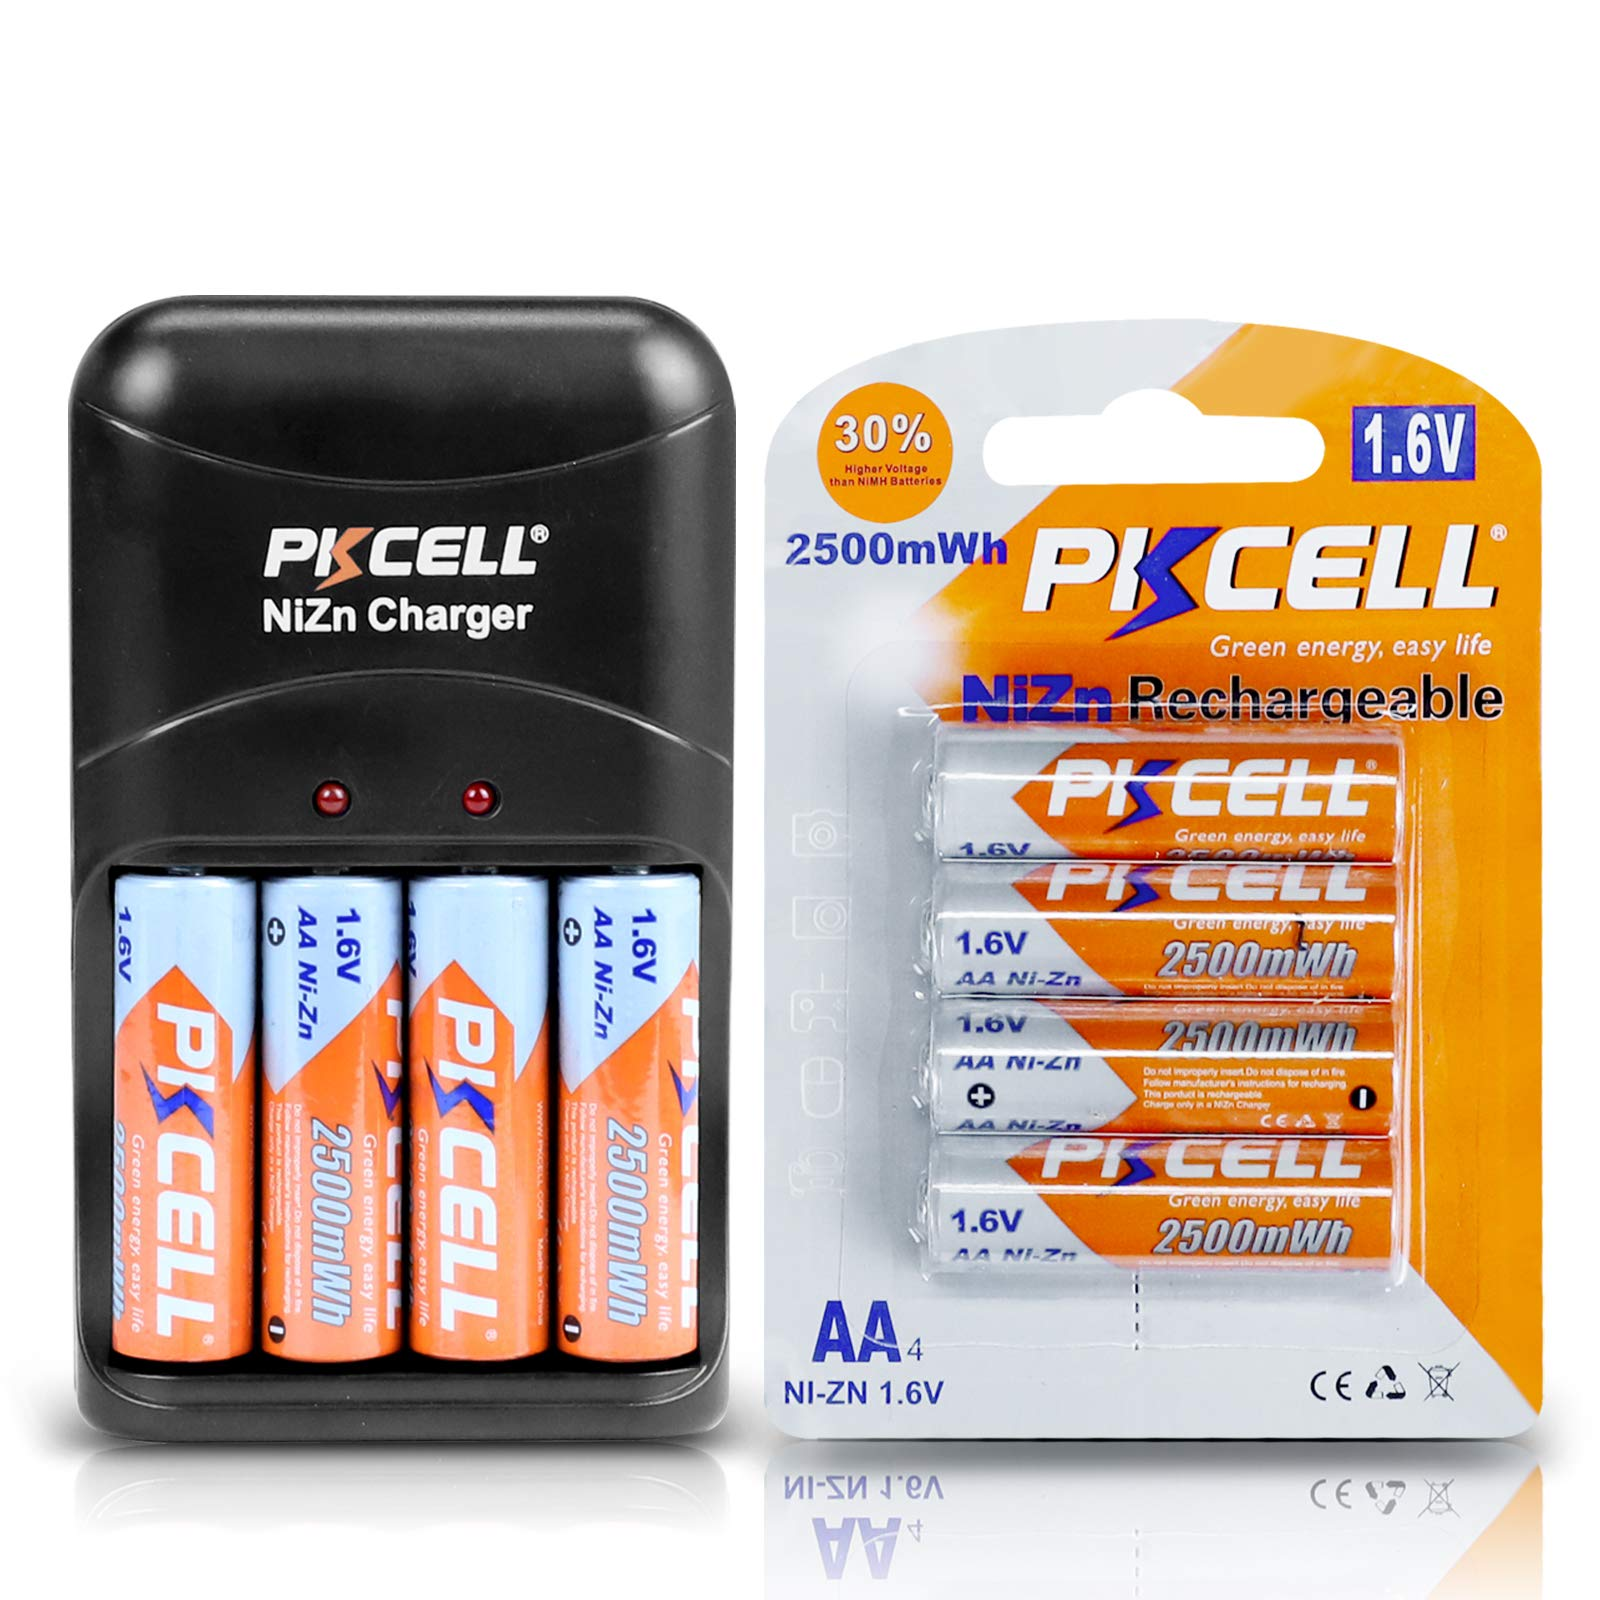 PKCELL Rechargeable AA Batteries NiZn Double A 1.6V 2500mWh Battery- 4Count with Ni-Zn AA/AAA Battery Charger